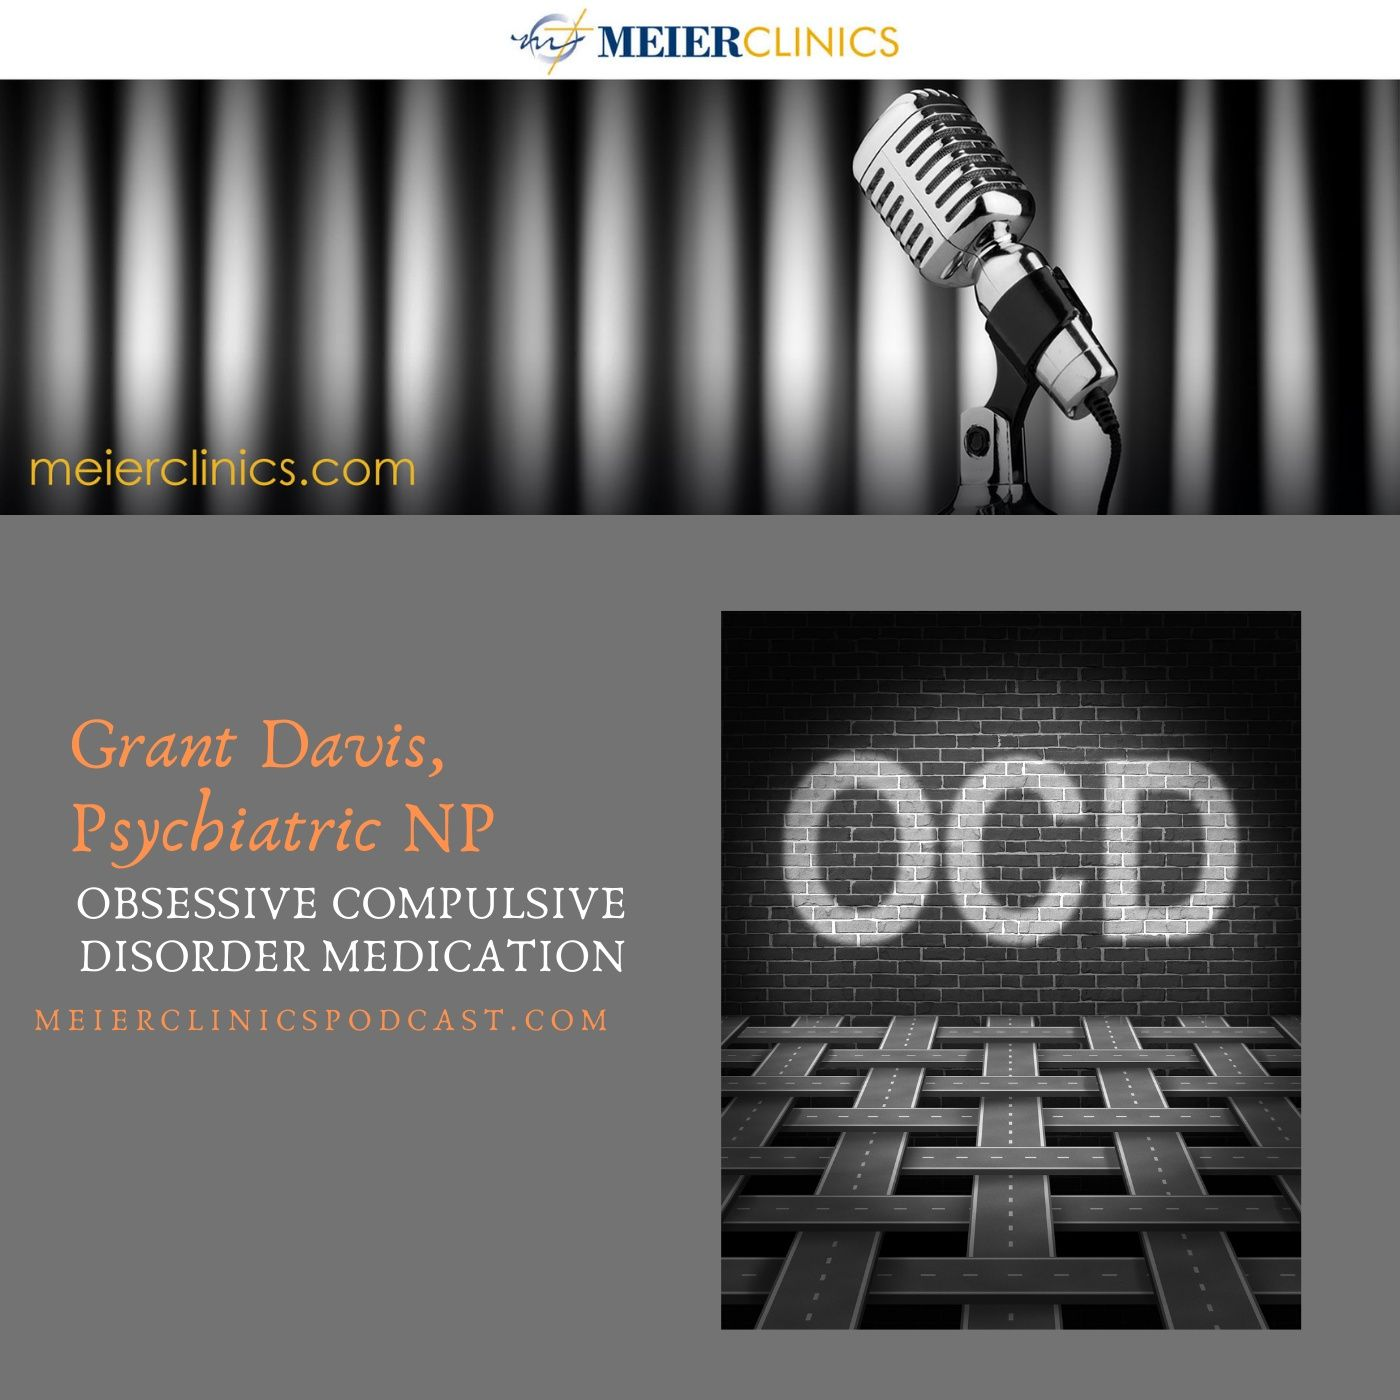 Obsessive Compulsive Disorder and Medication